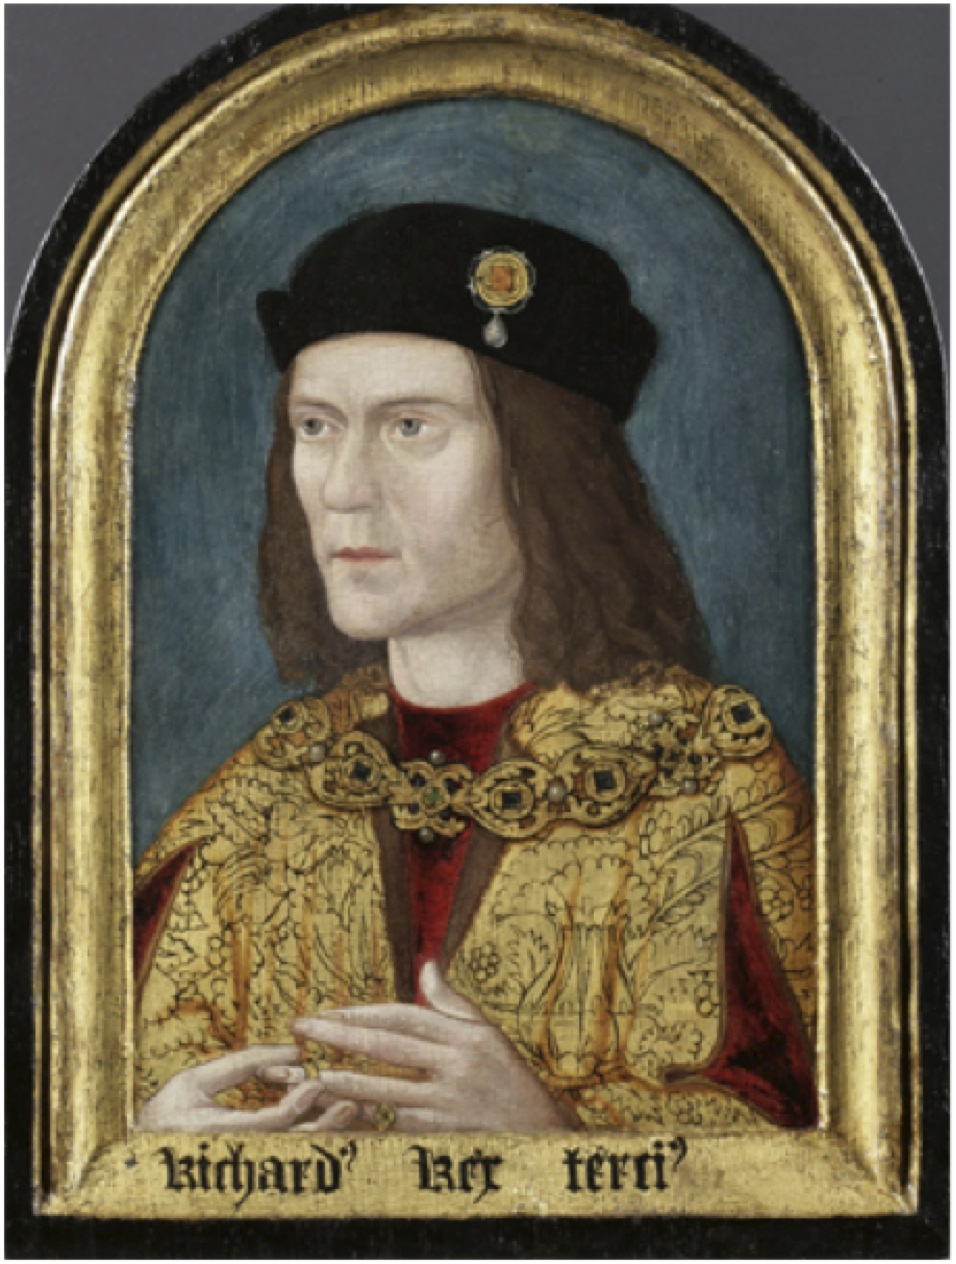 King Richard III. Portrait after restoration